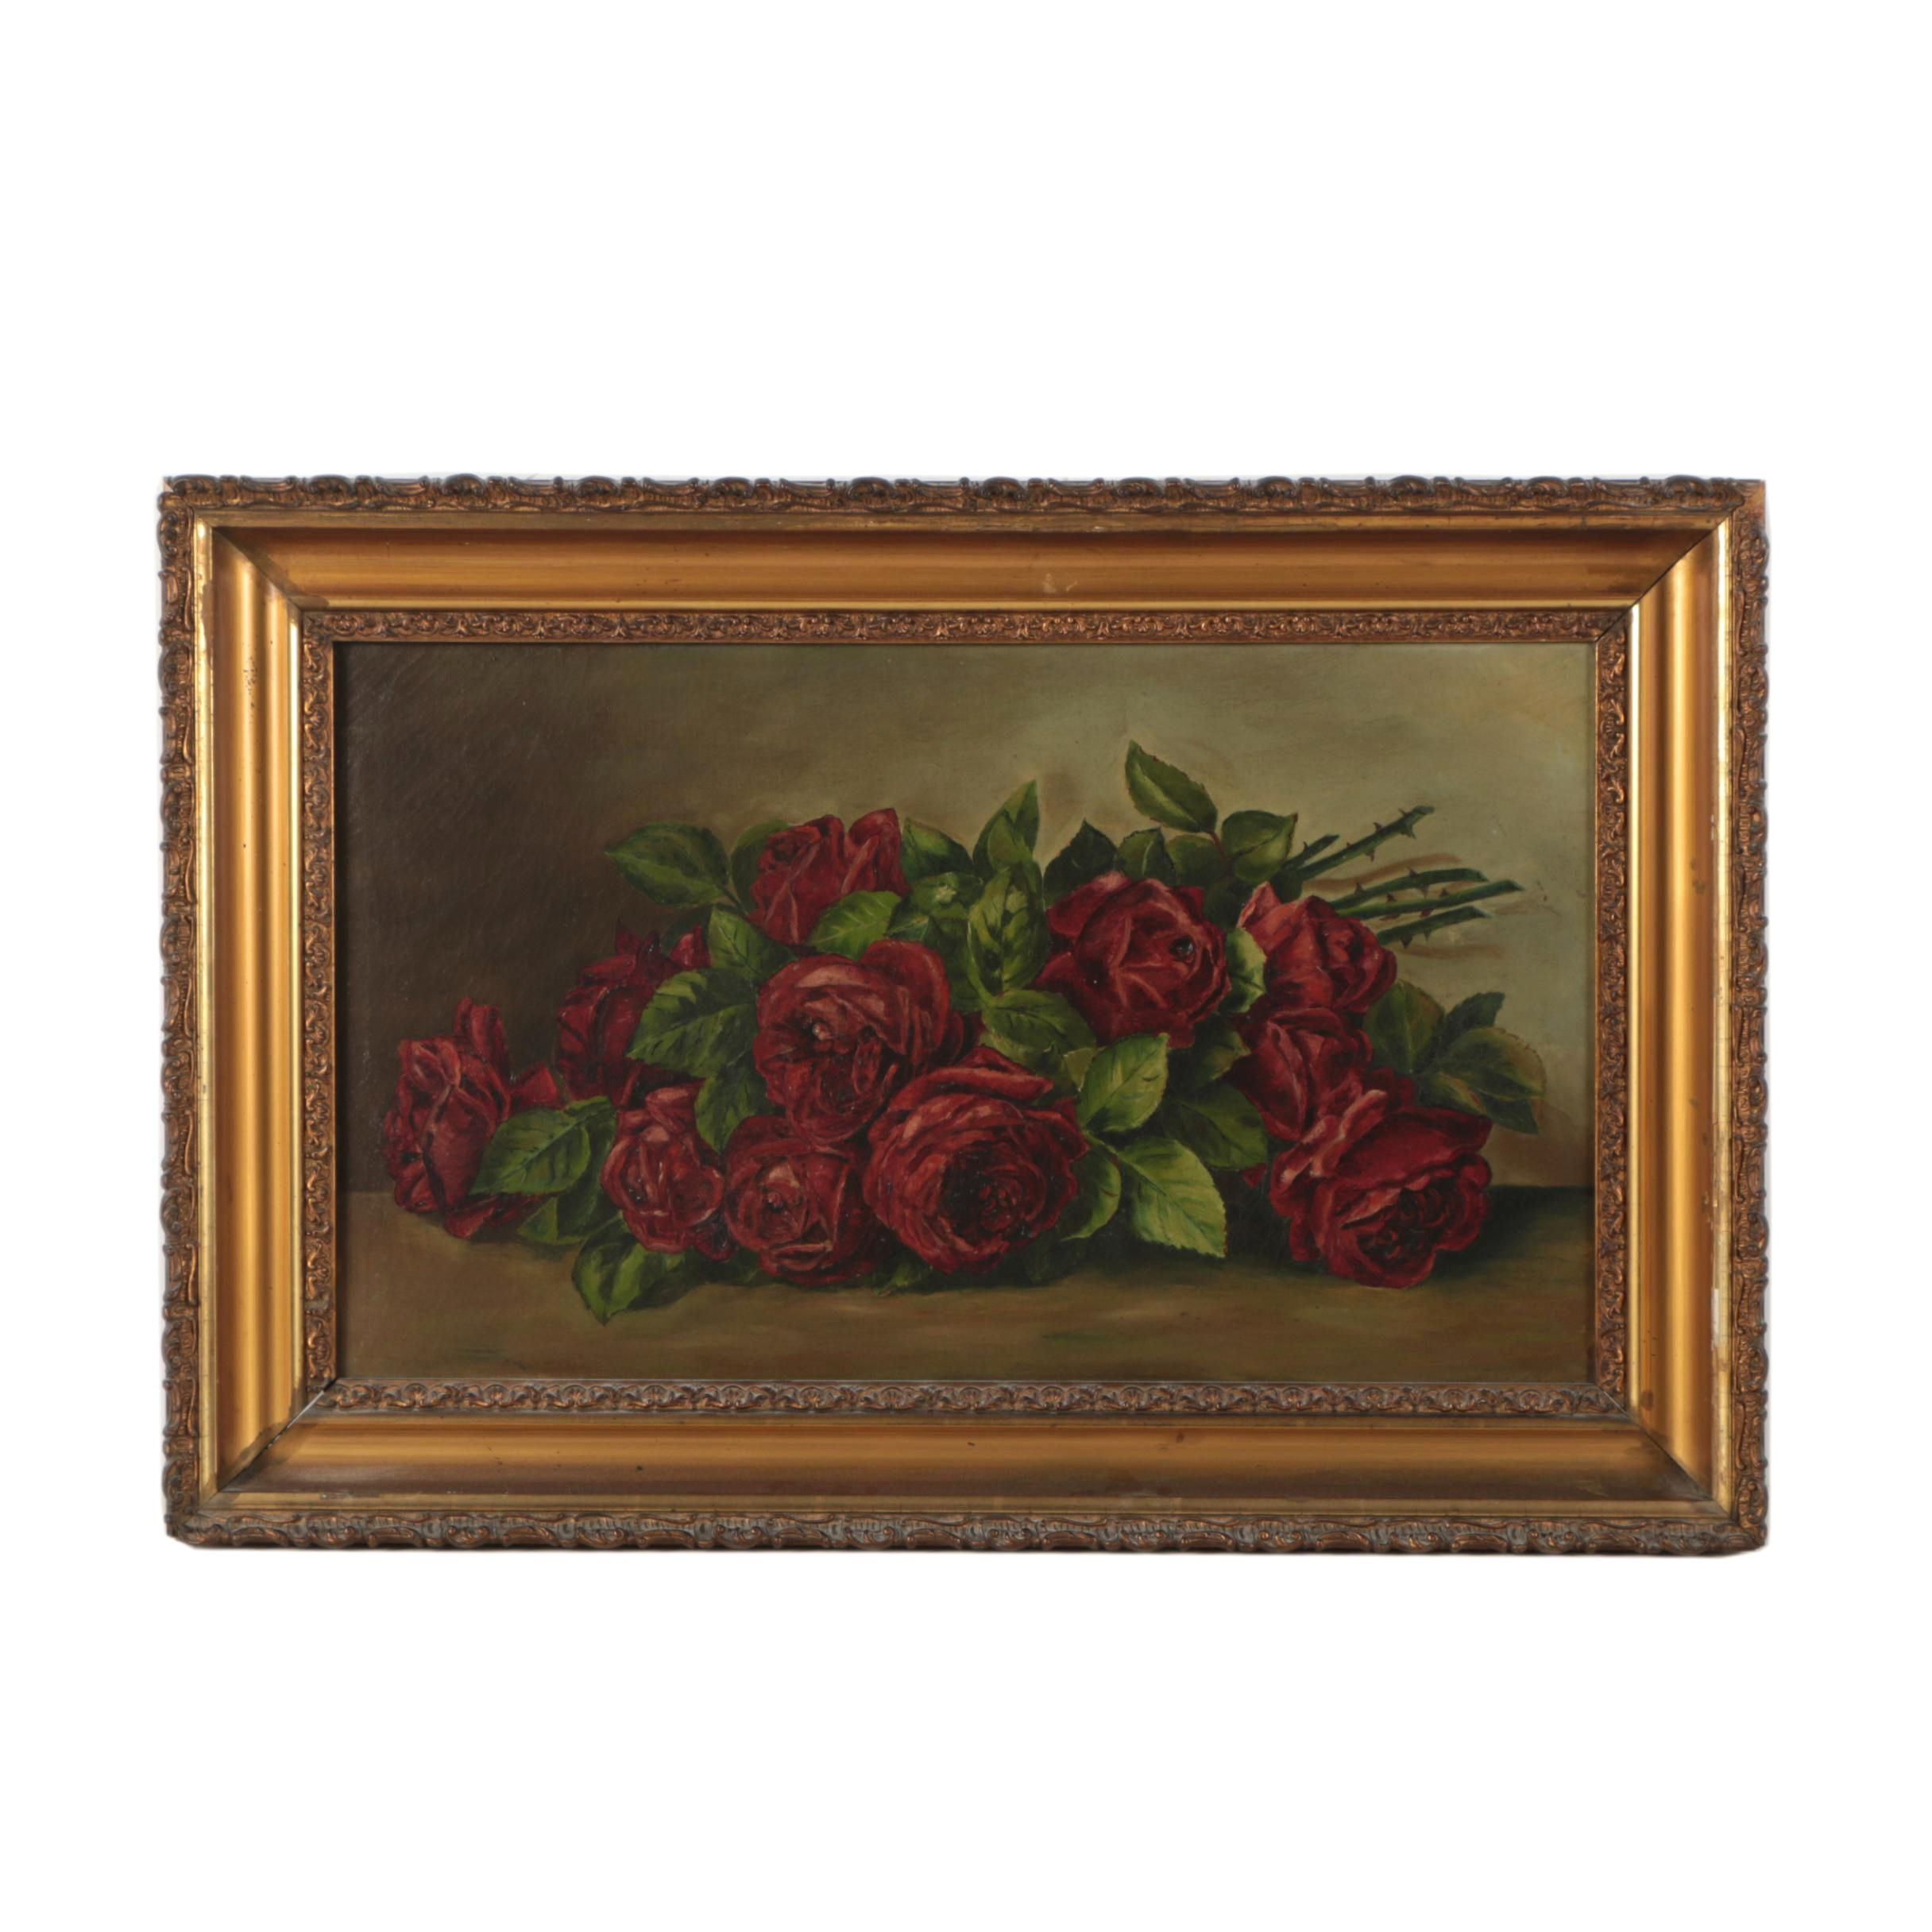 Antique Oil Painting of Still Life with Roses